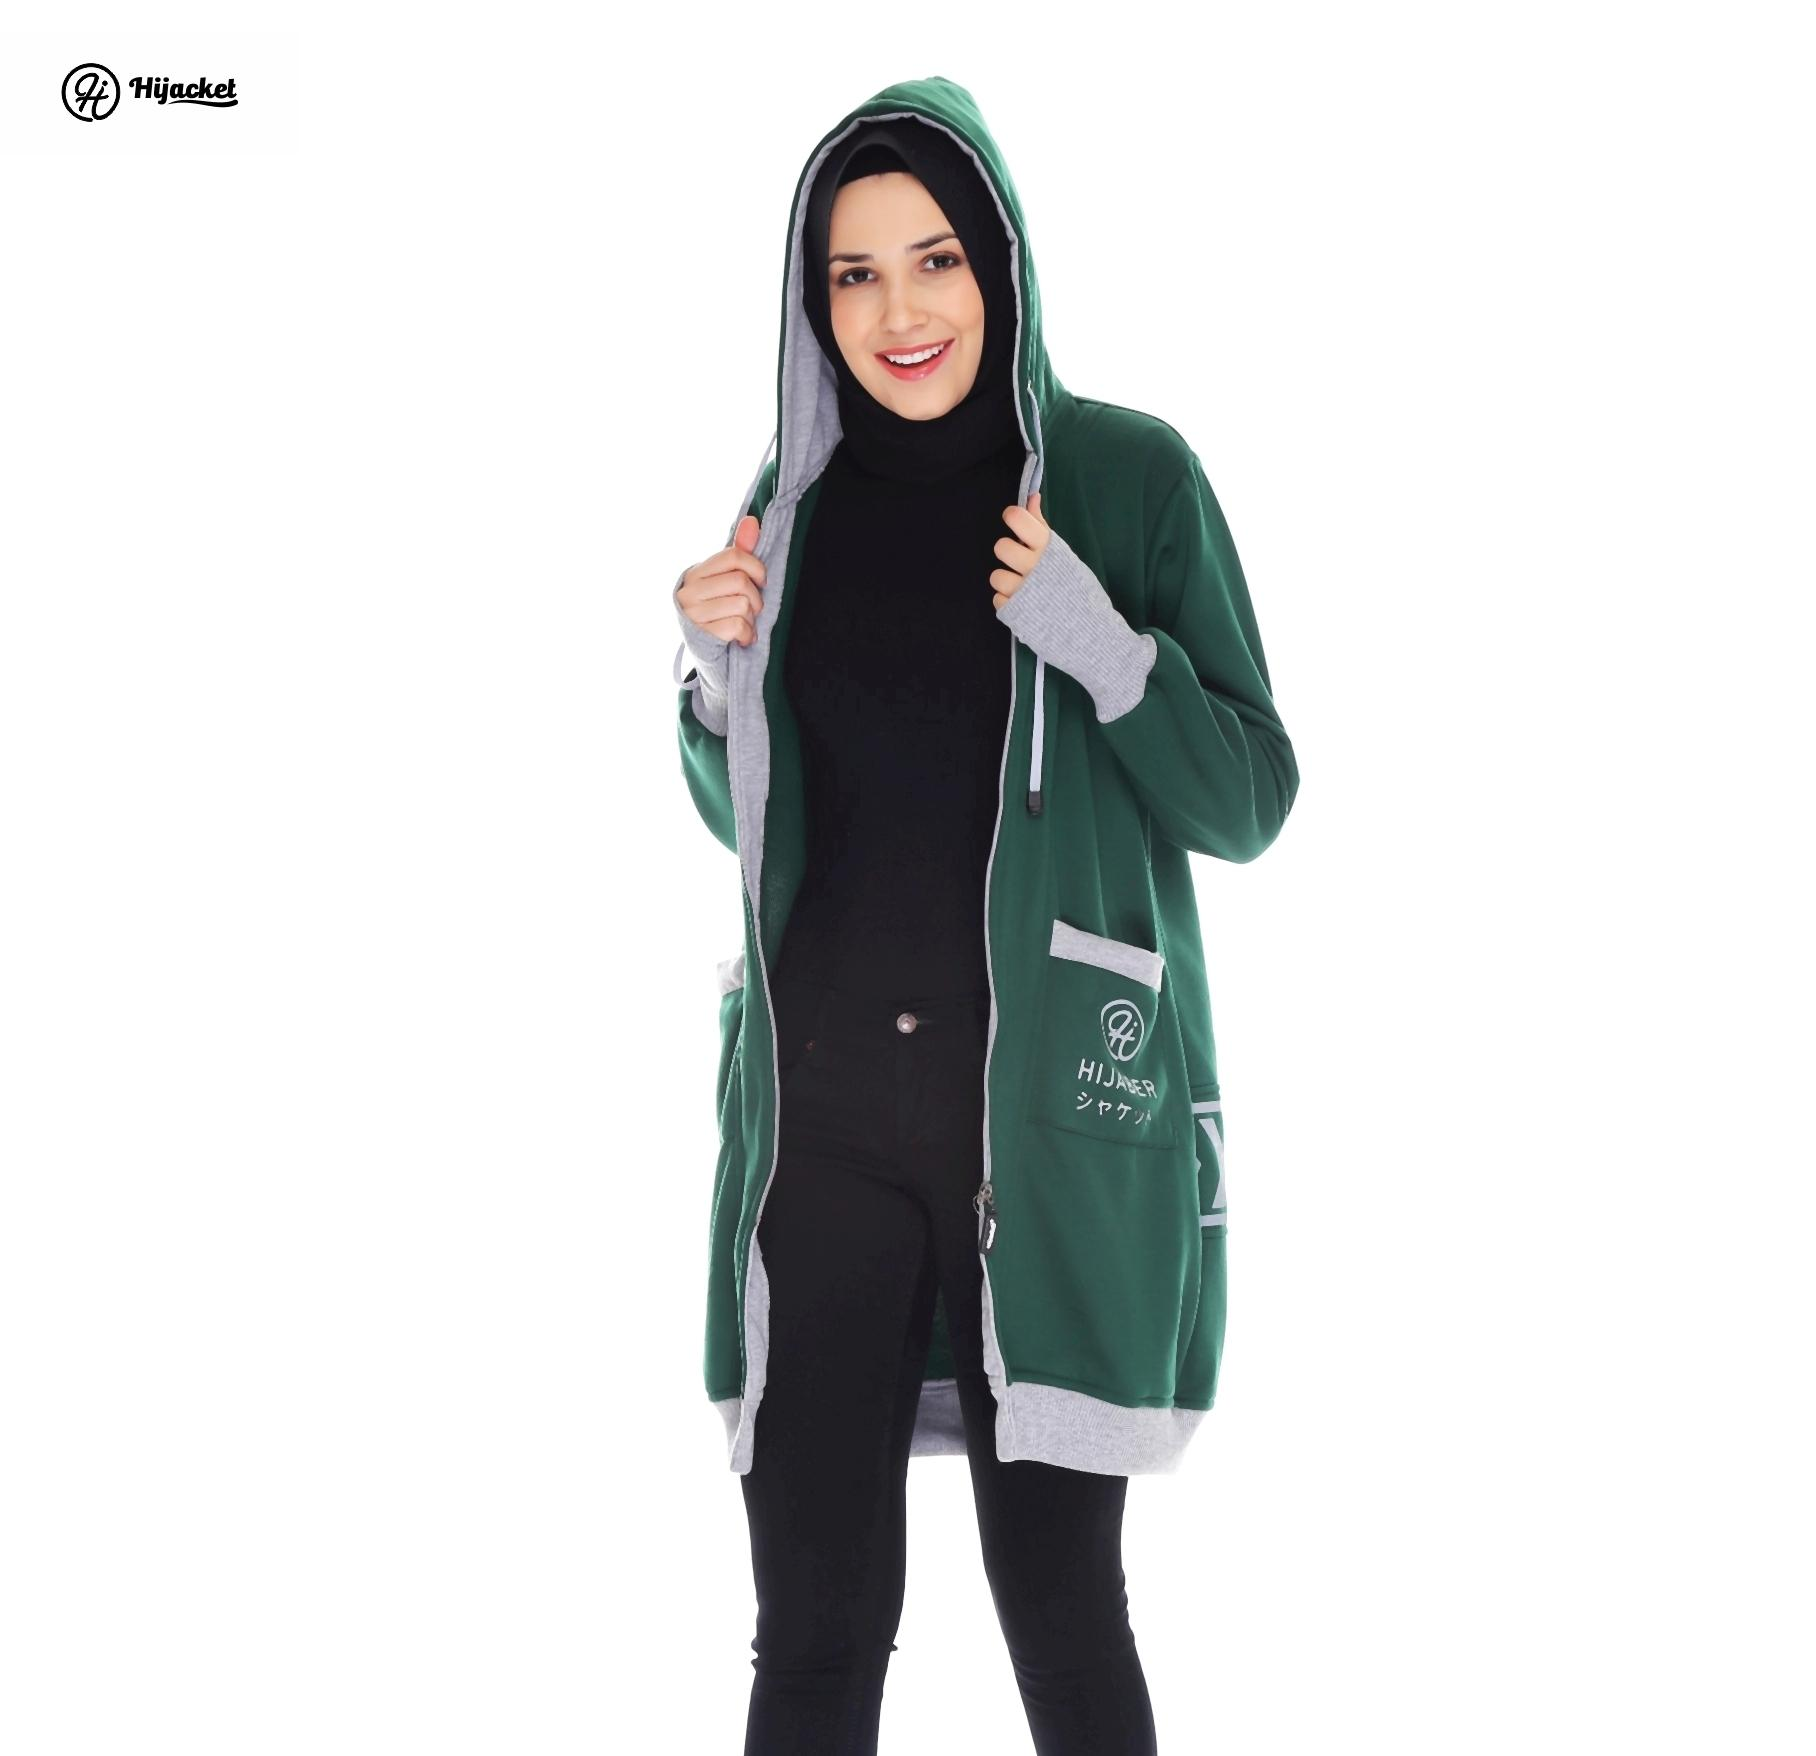 Jaket Sporty Japan Style Hijacket Green Yukata